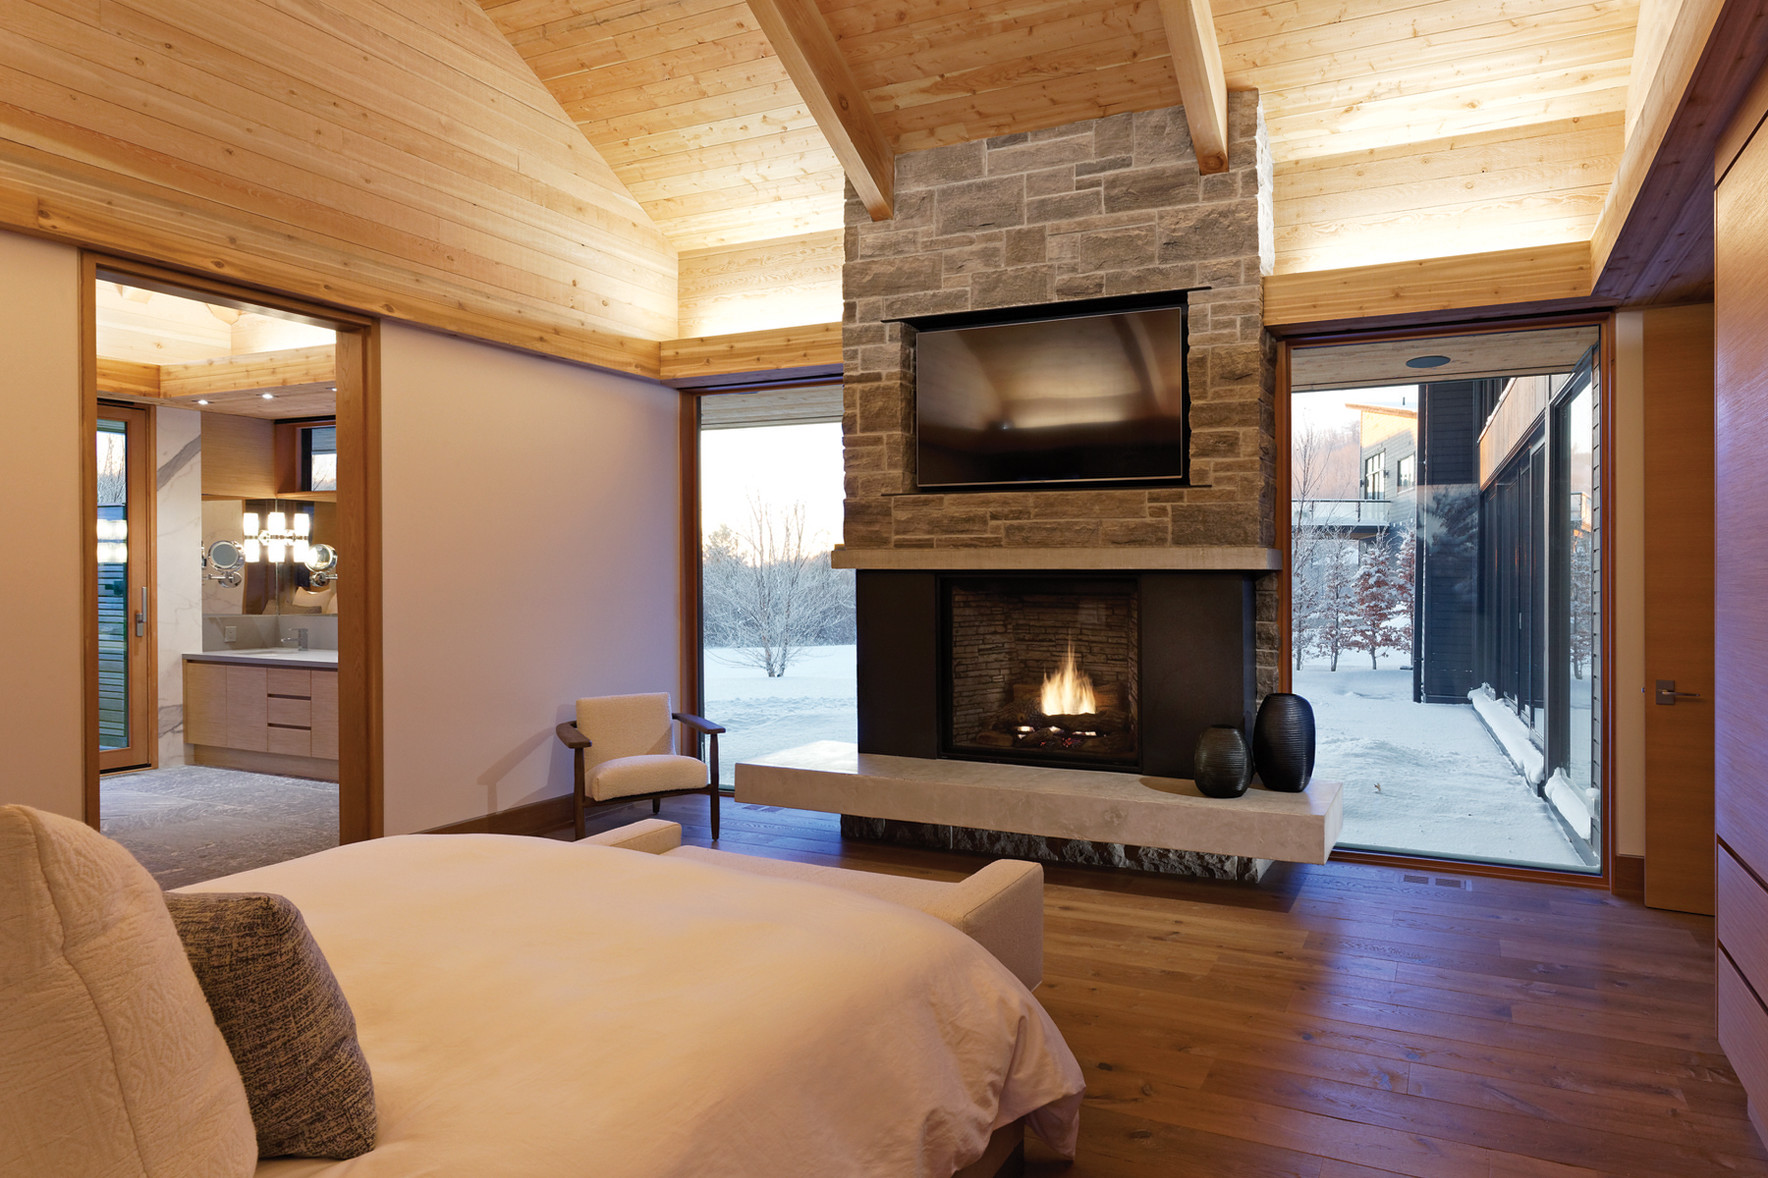 Bedroom with stone fireplace with floor to ceiling glass windows